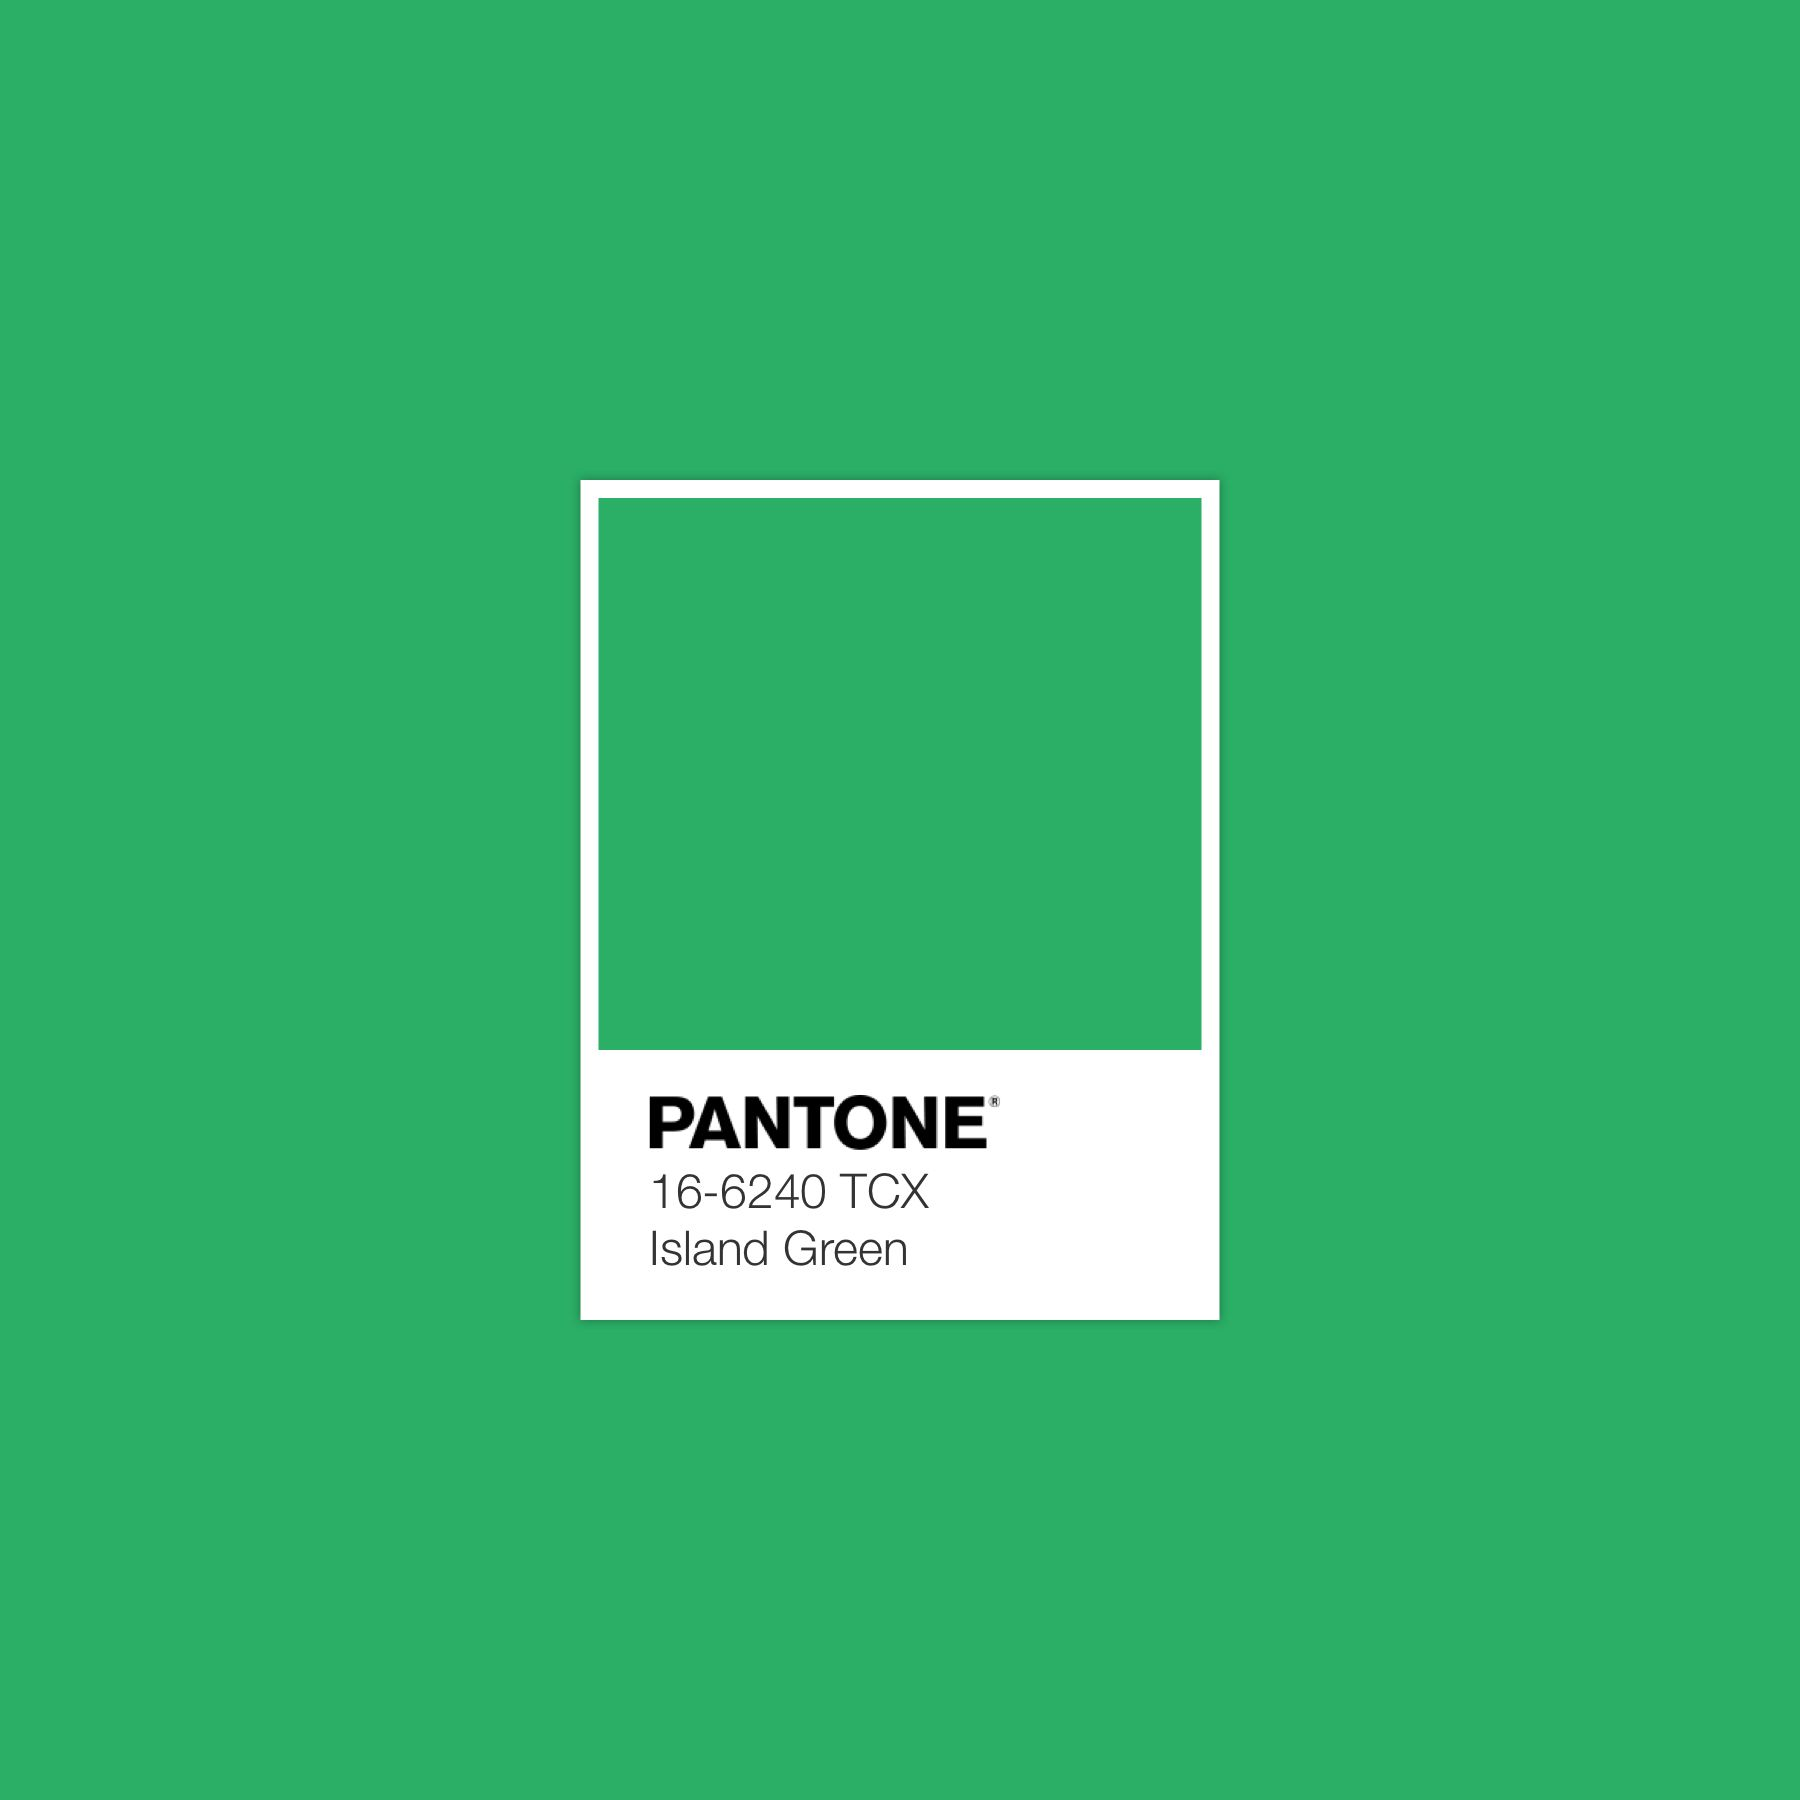 Islandgreen Pantone Luxurydotcom Island Green Color Islands